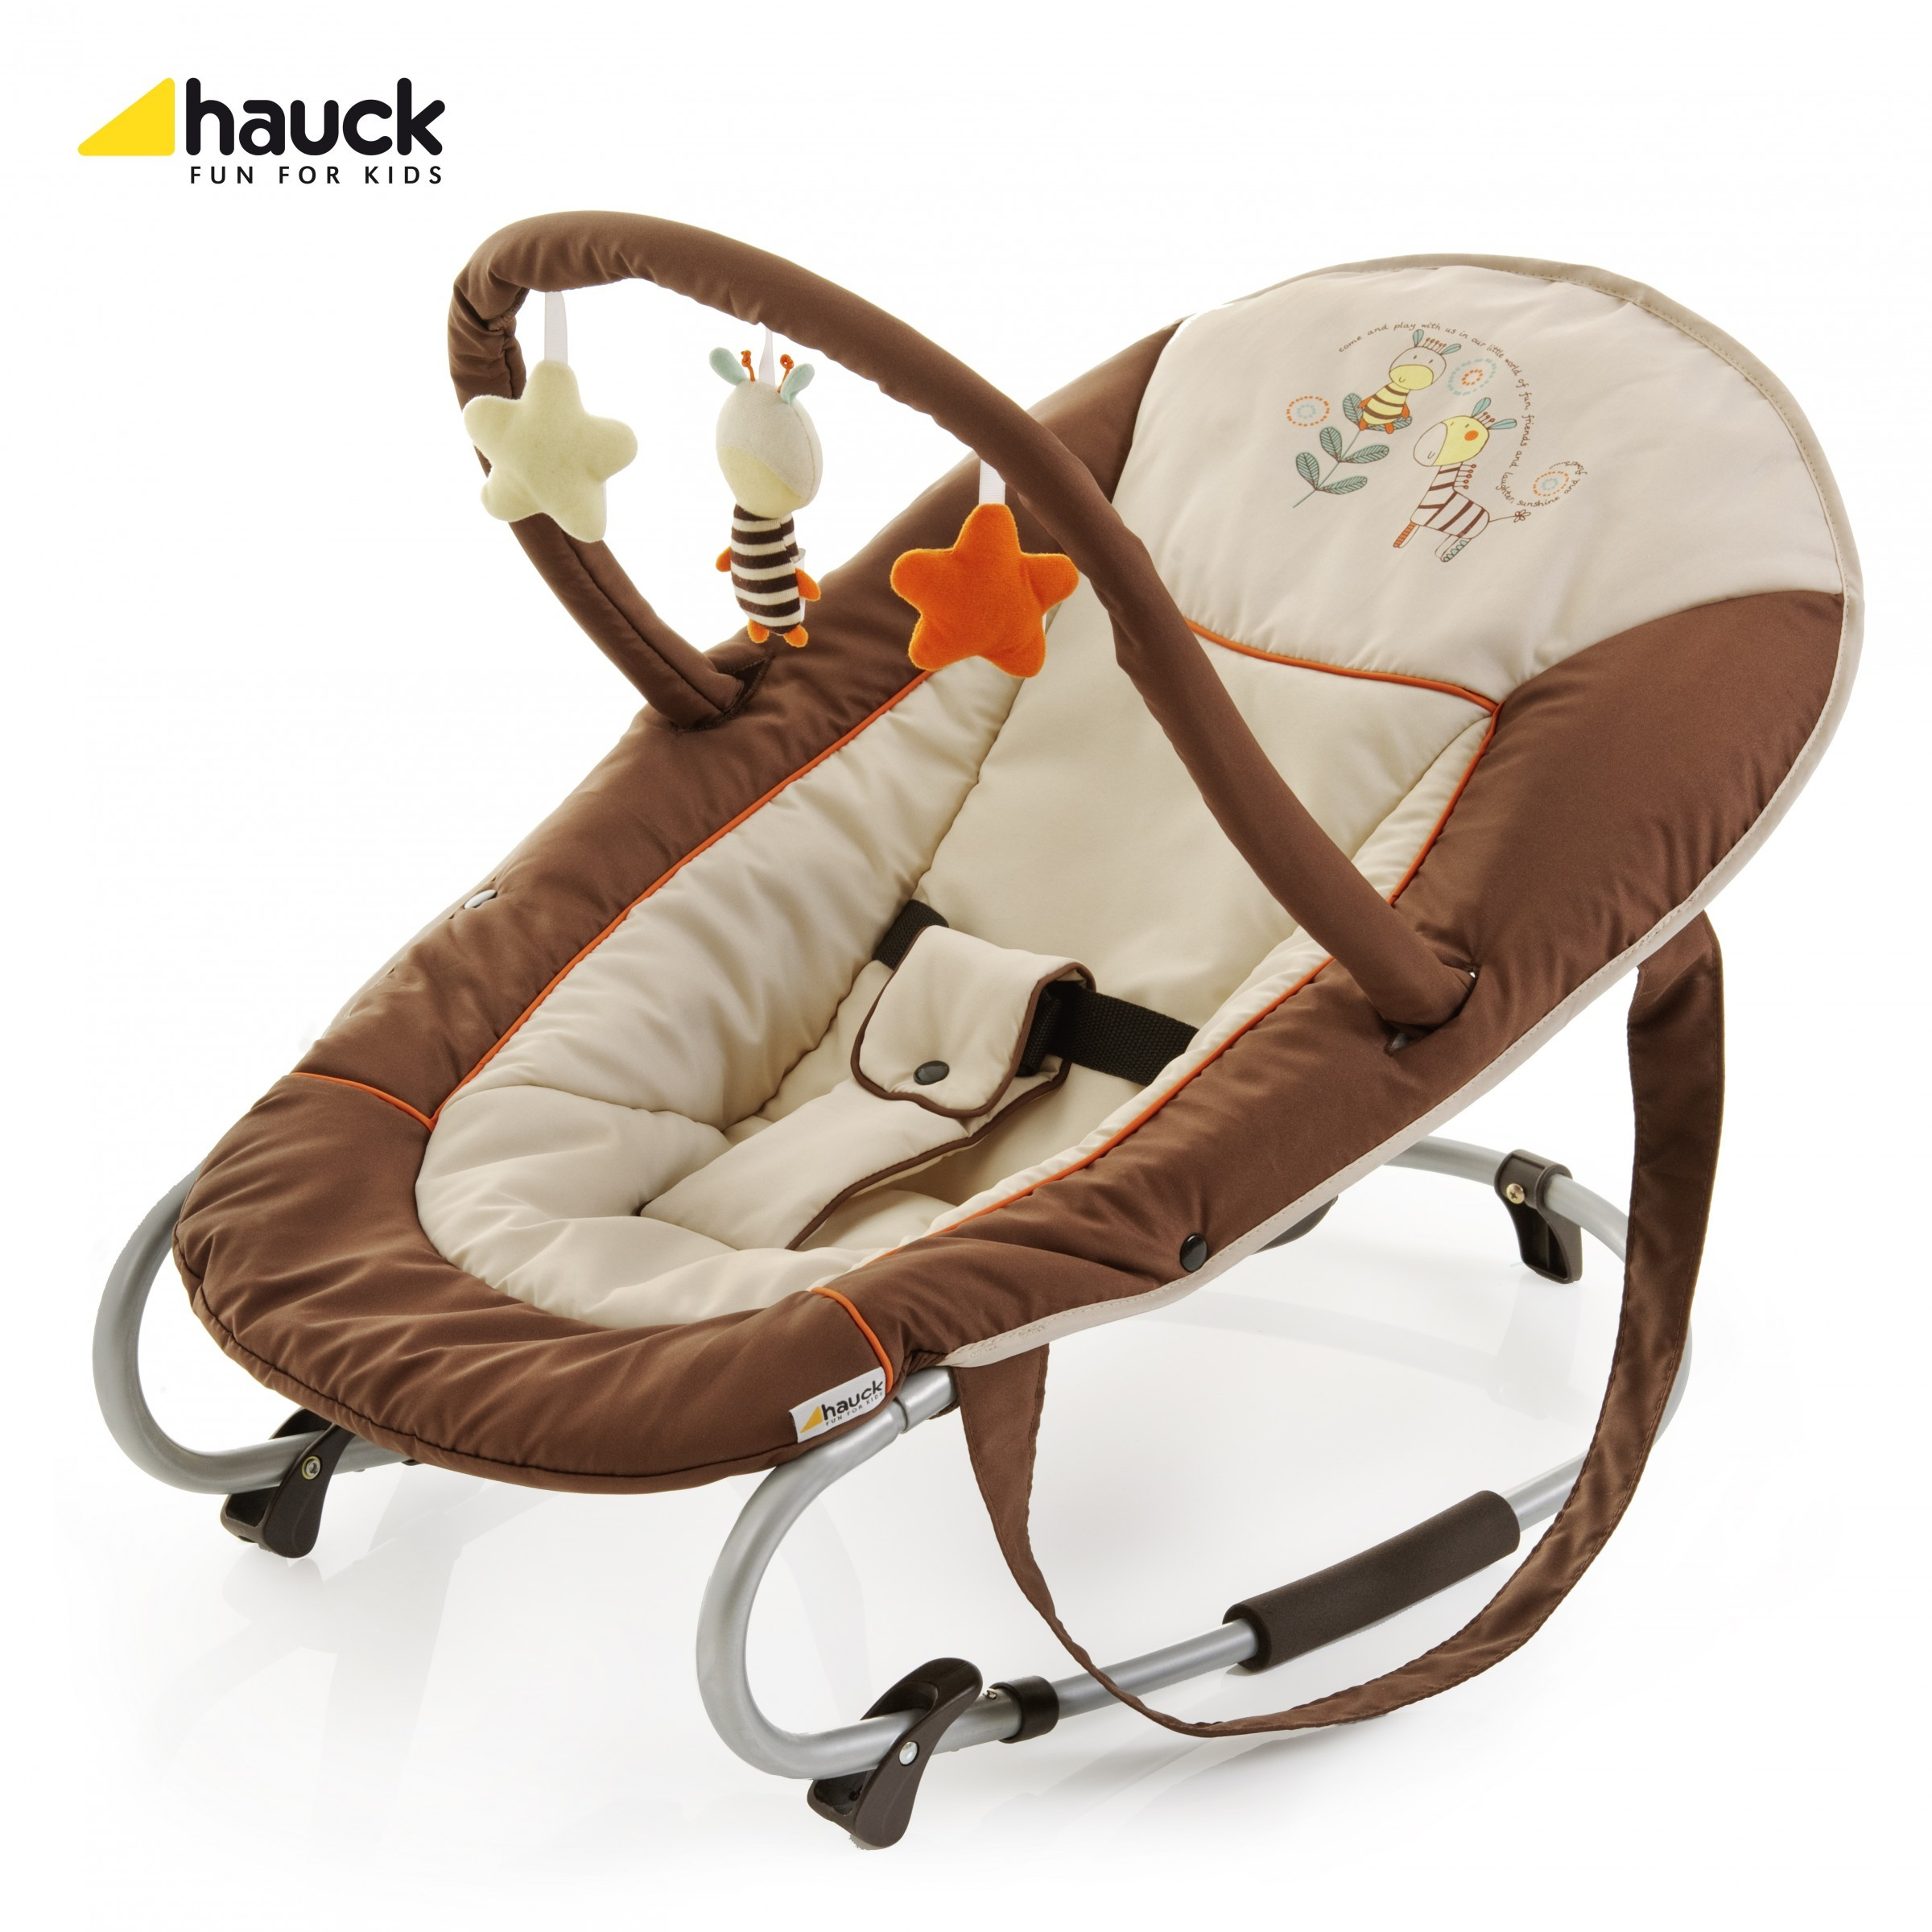 Hauck Wippe Bungee Deluxe Little World